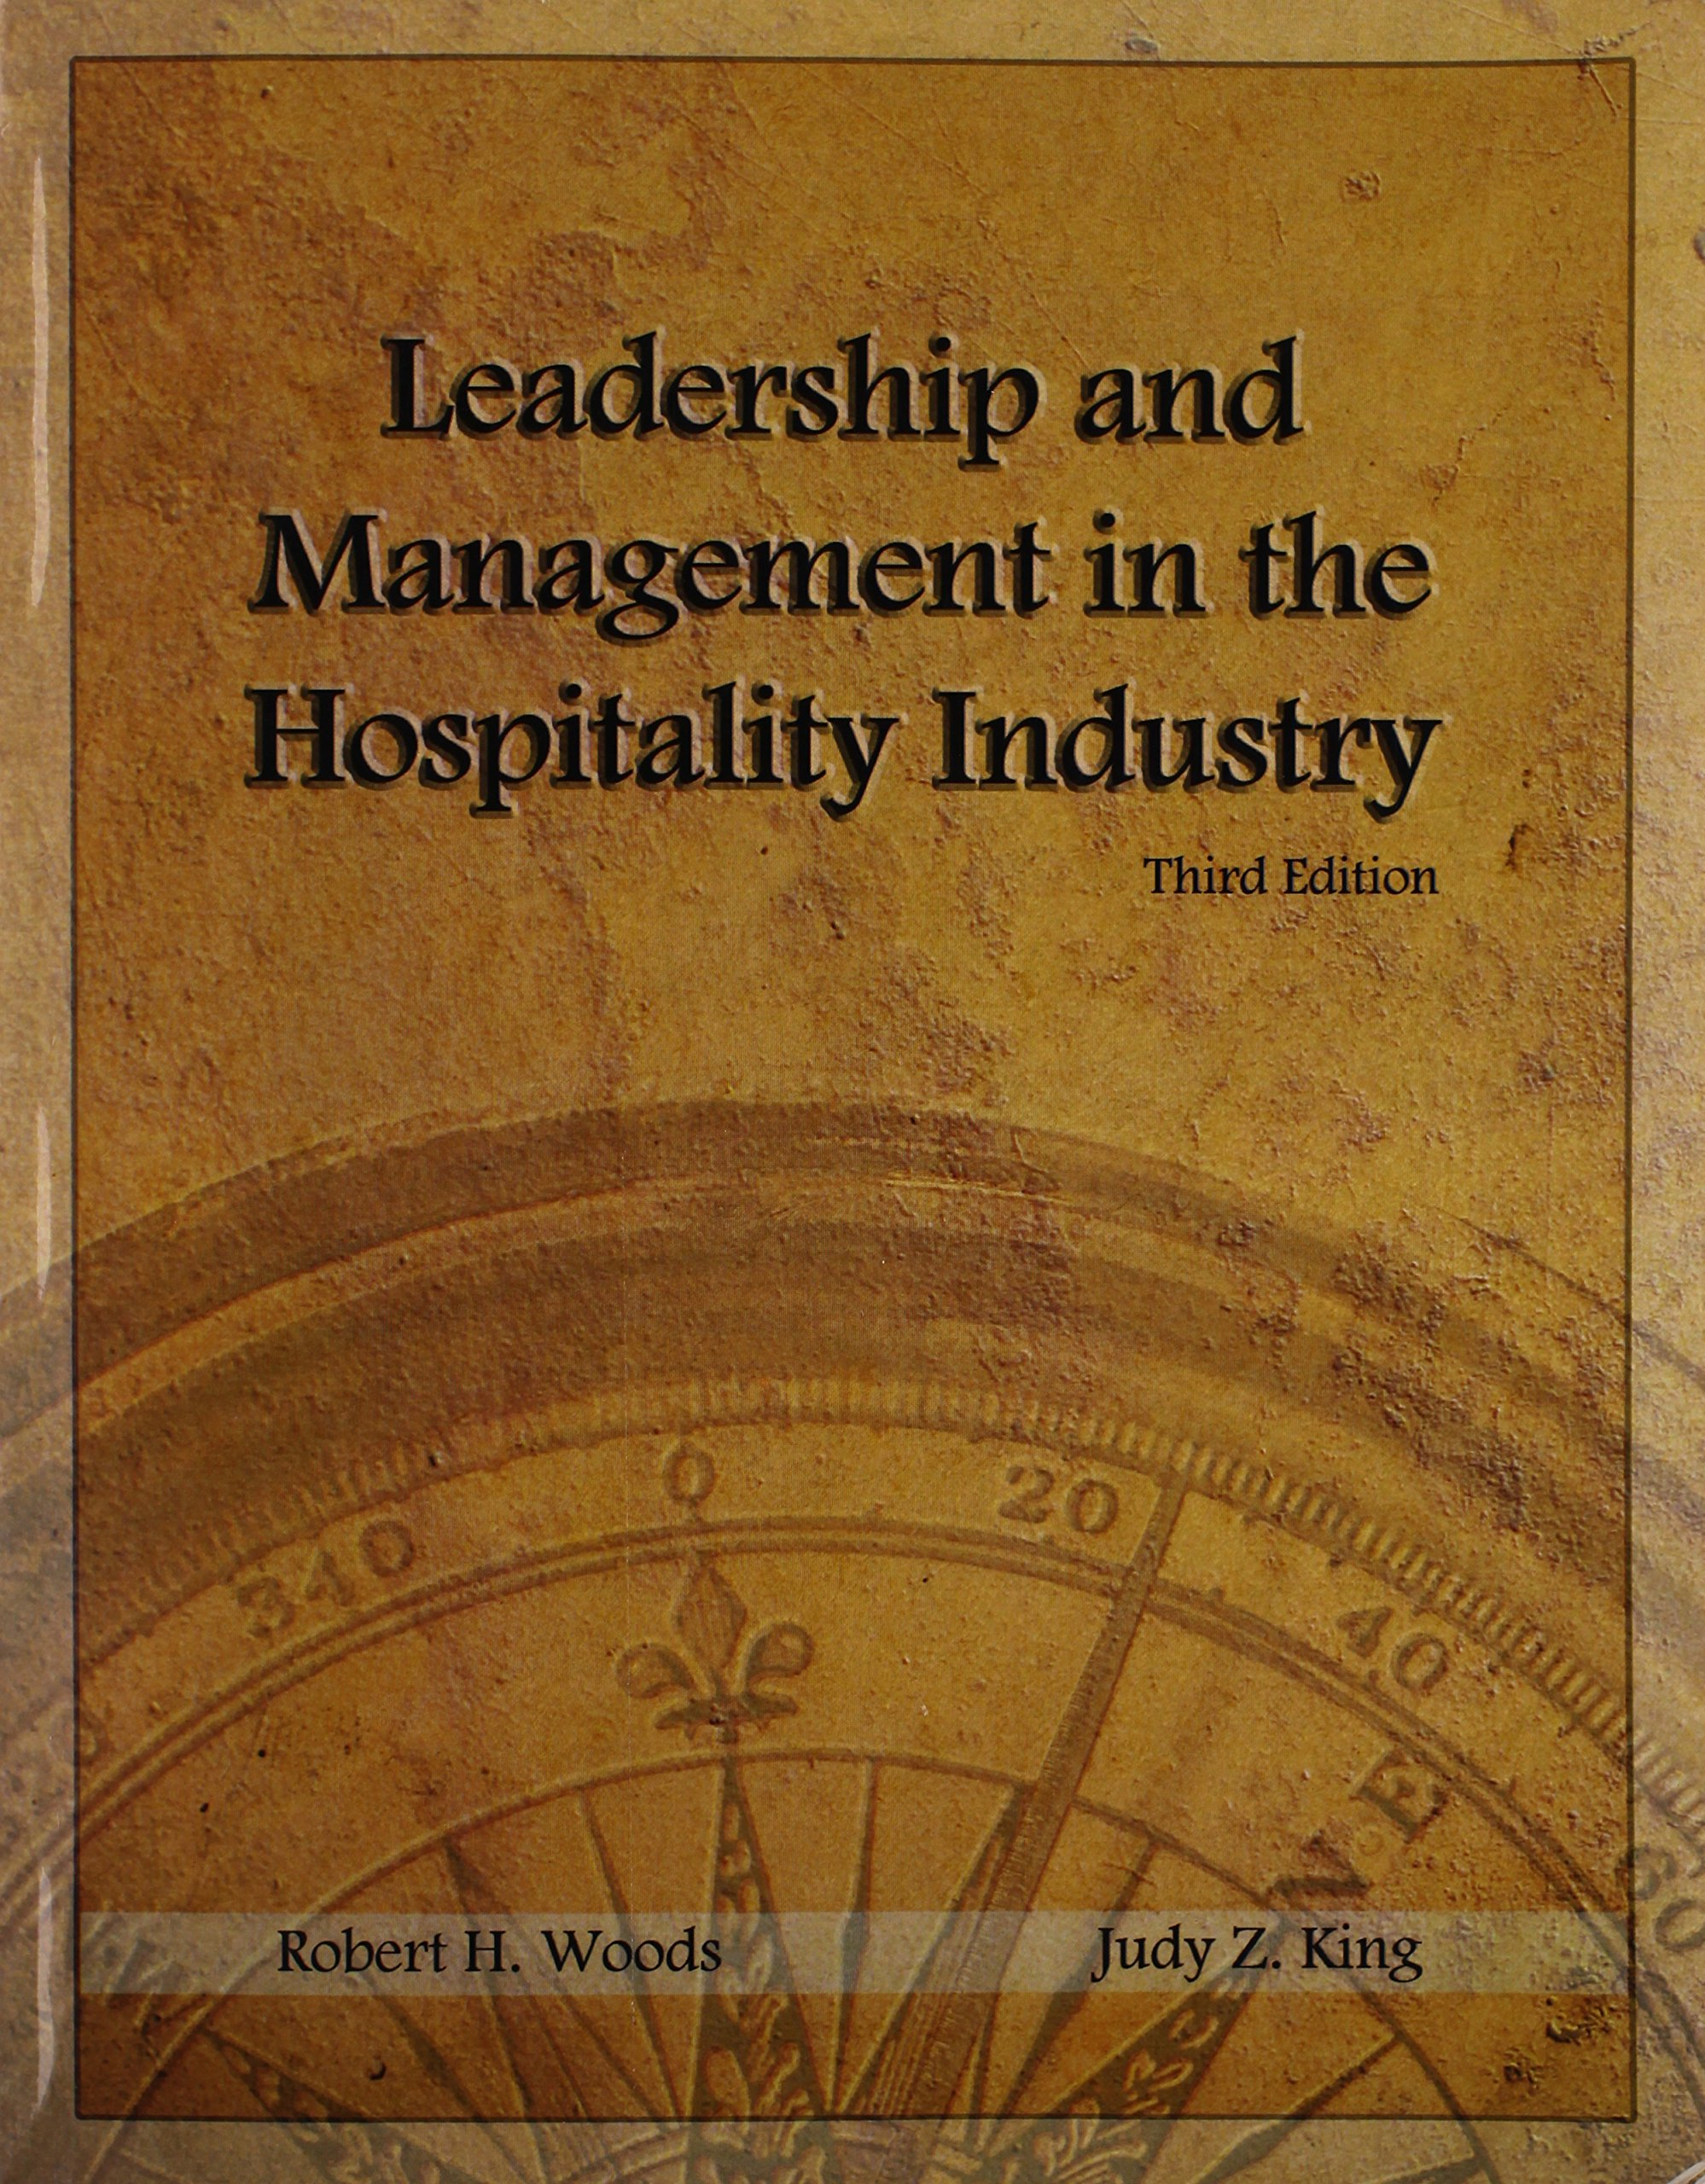 Buy Leadership and Management in the Hospitality Industry